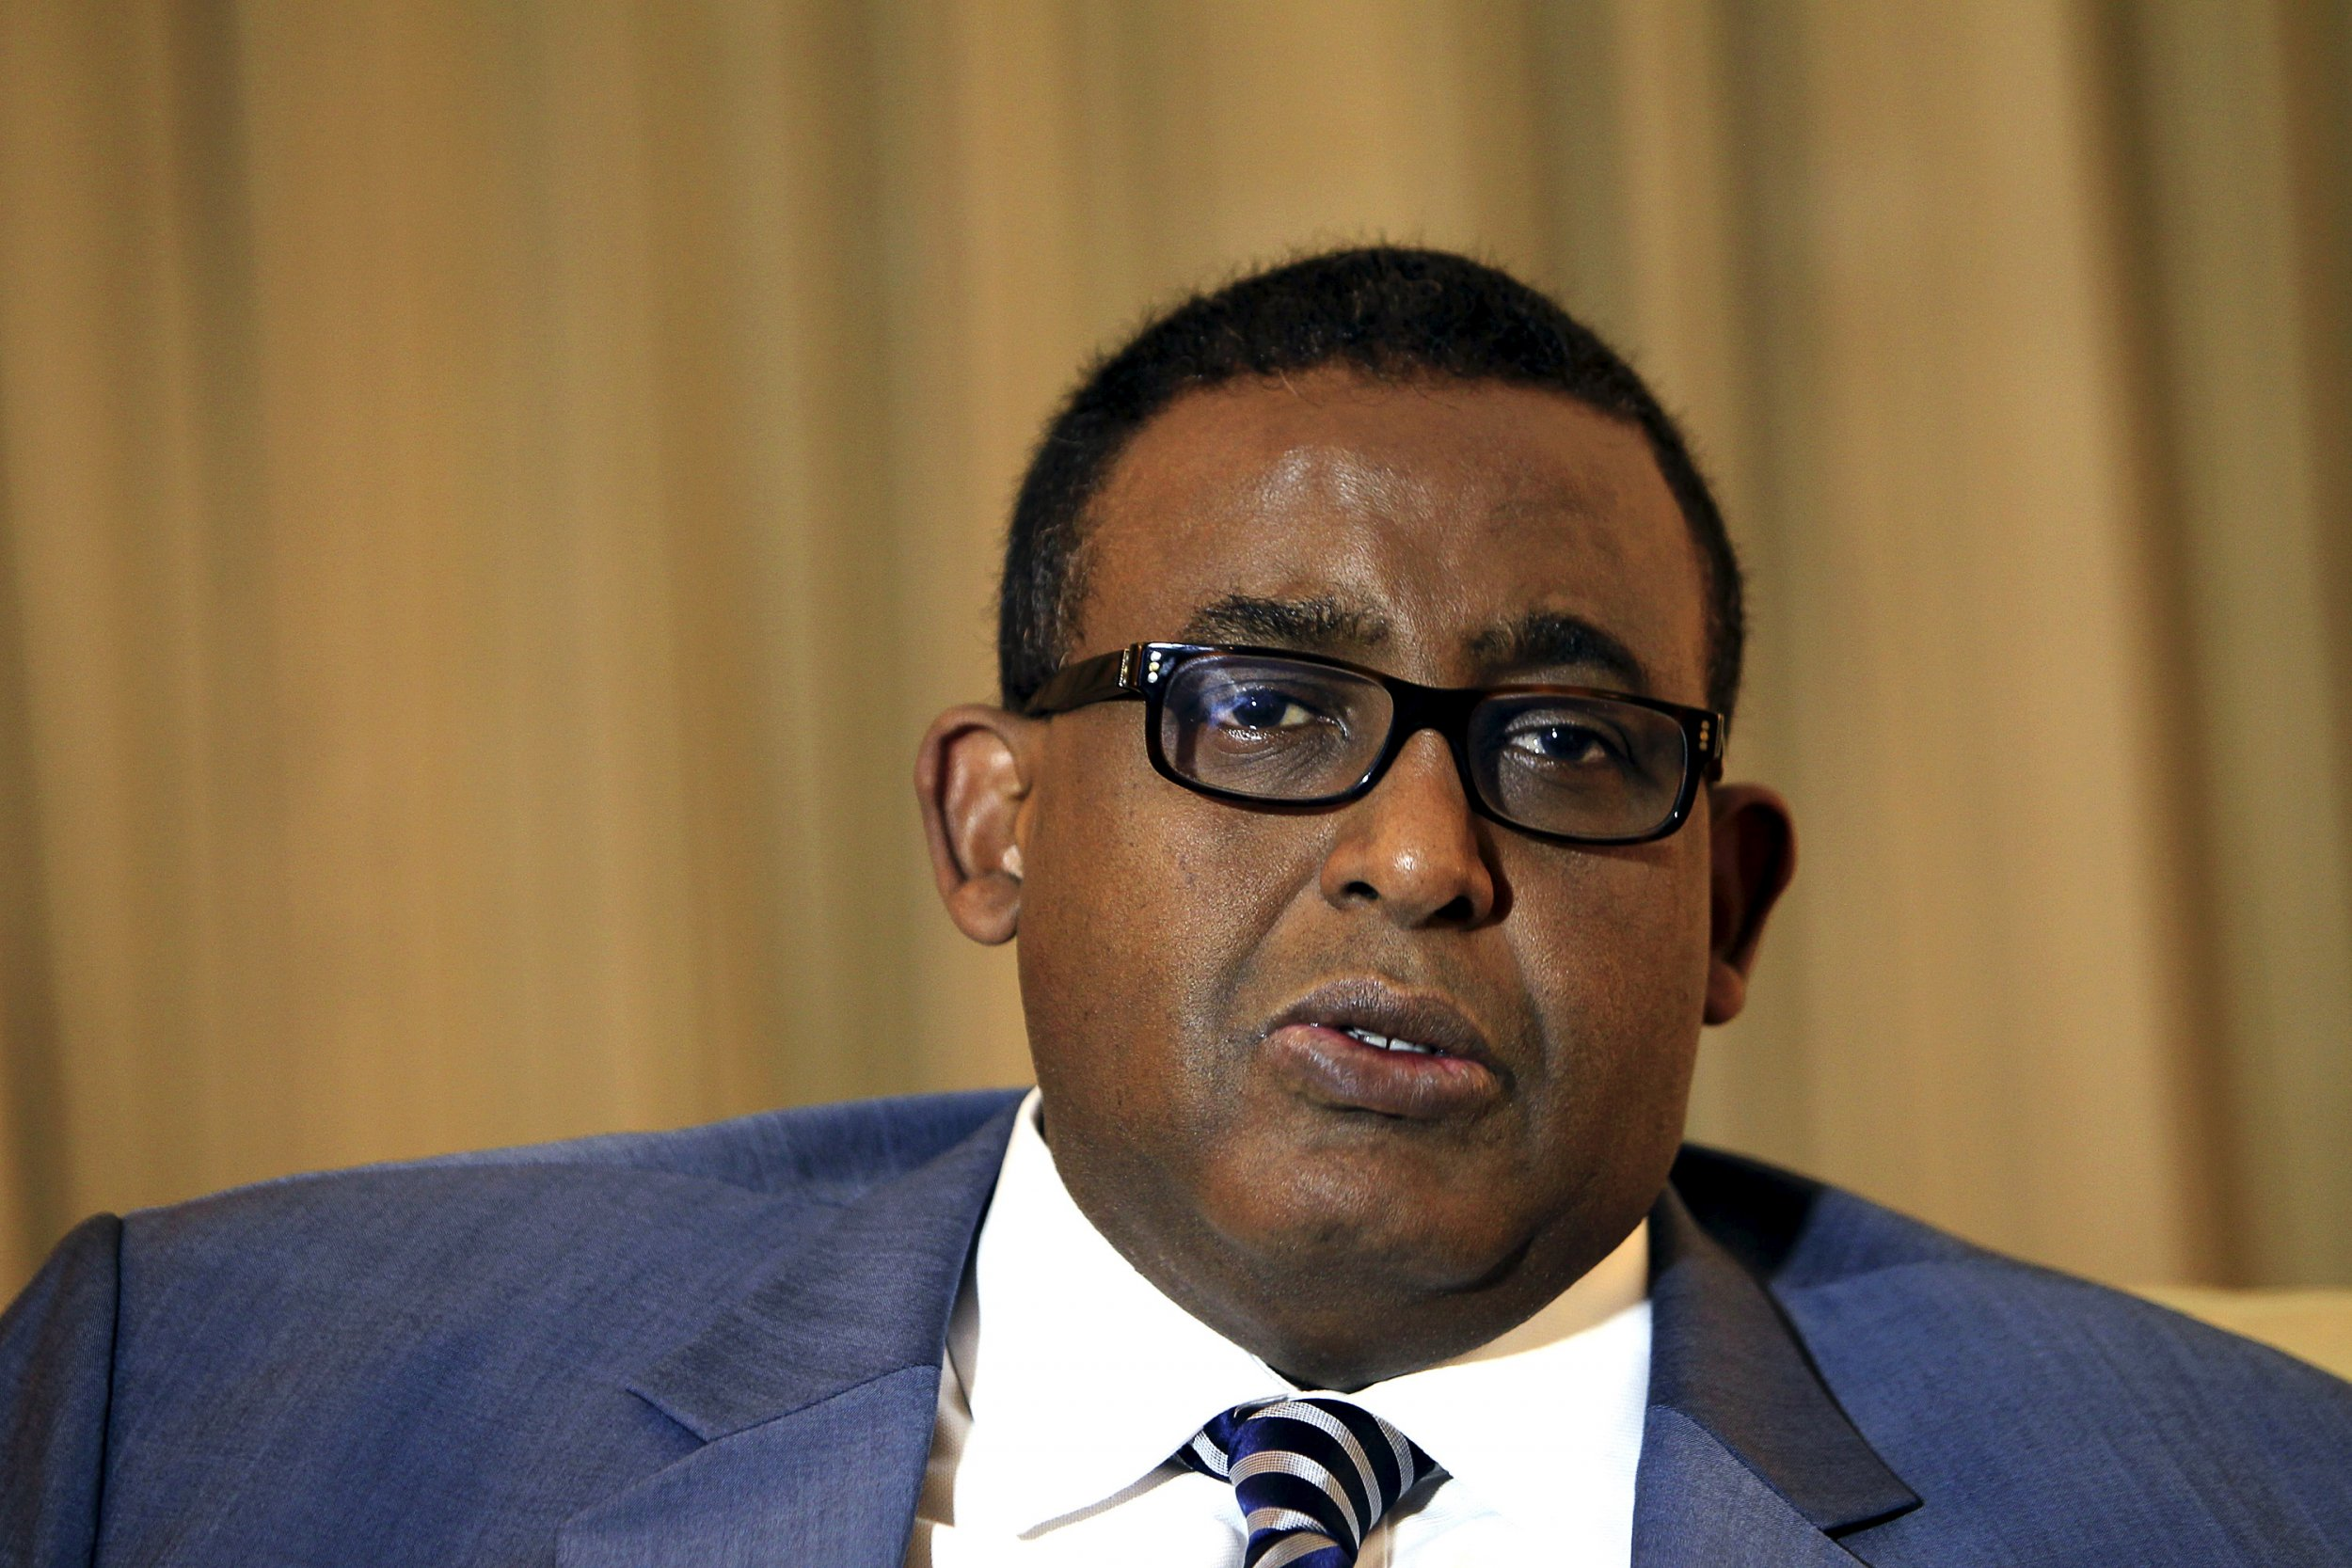 Somalia Prime Minister Omar Sharmarke in an interview.